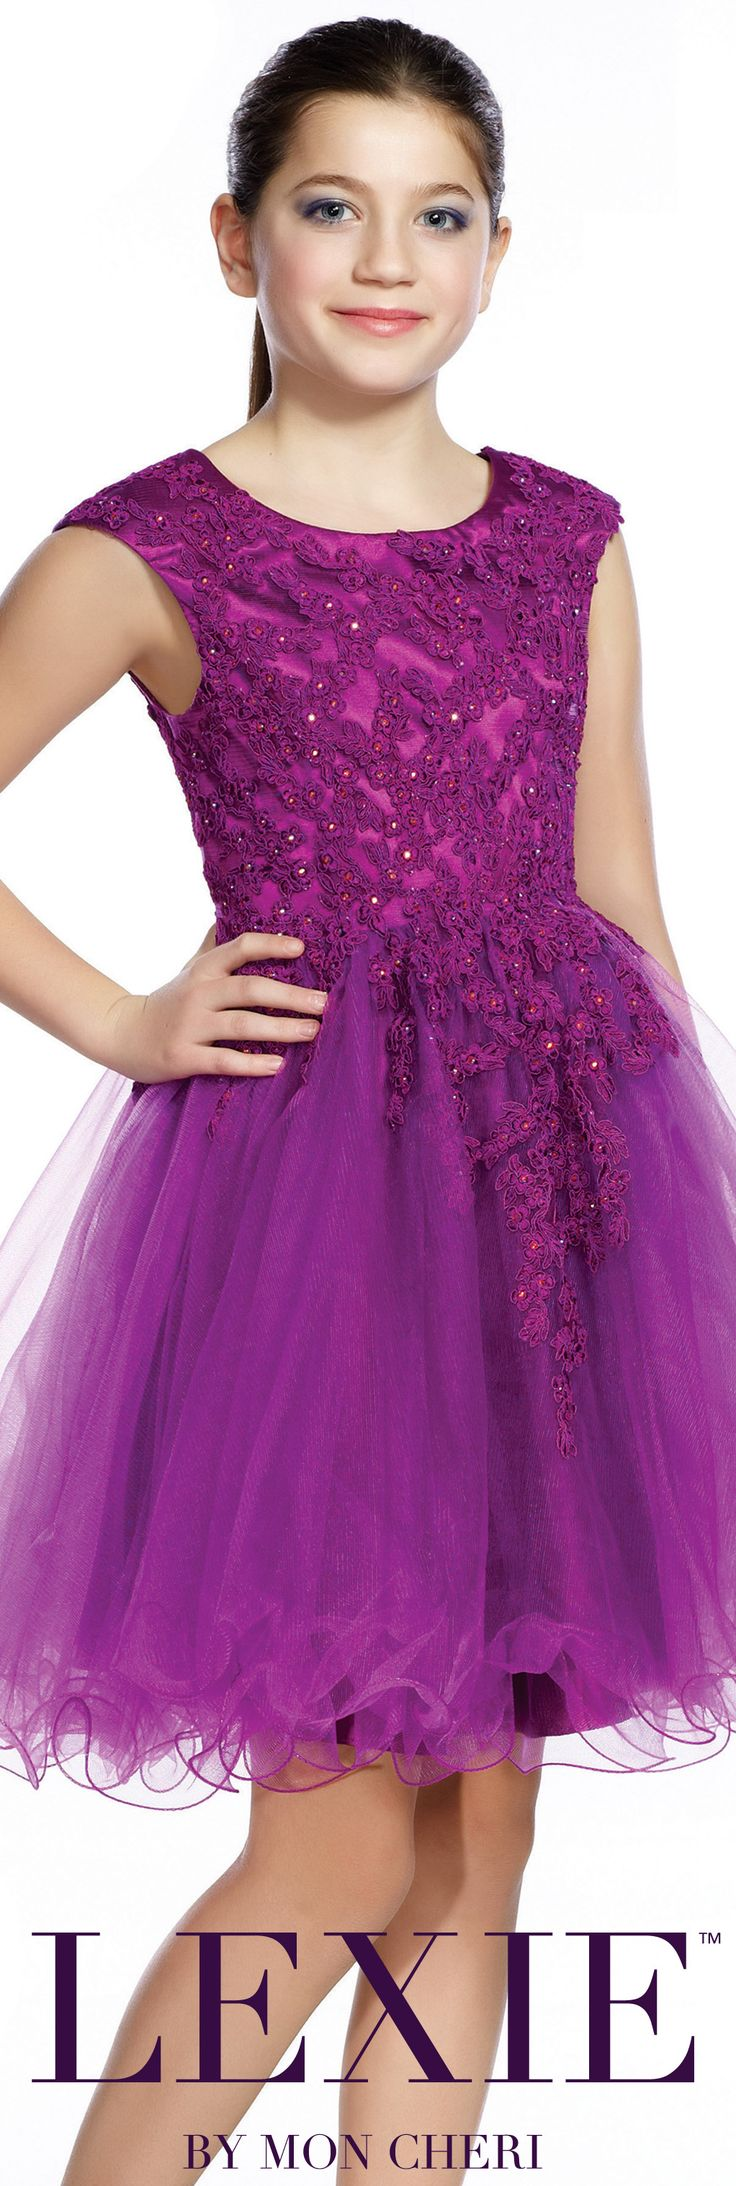 14 best beautiful images on Pinterest | Pageant gowns, Dresses for ...